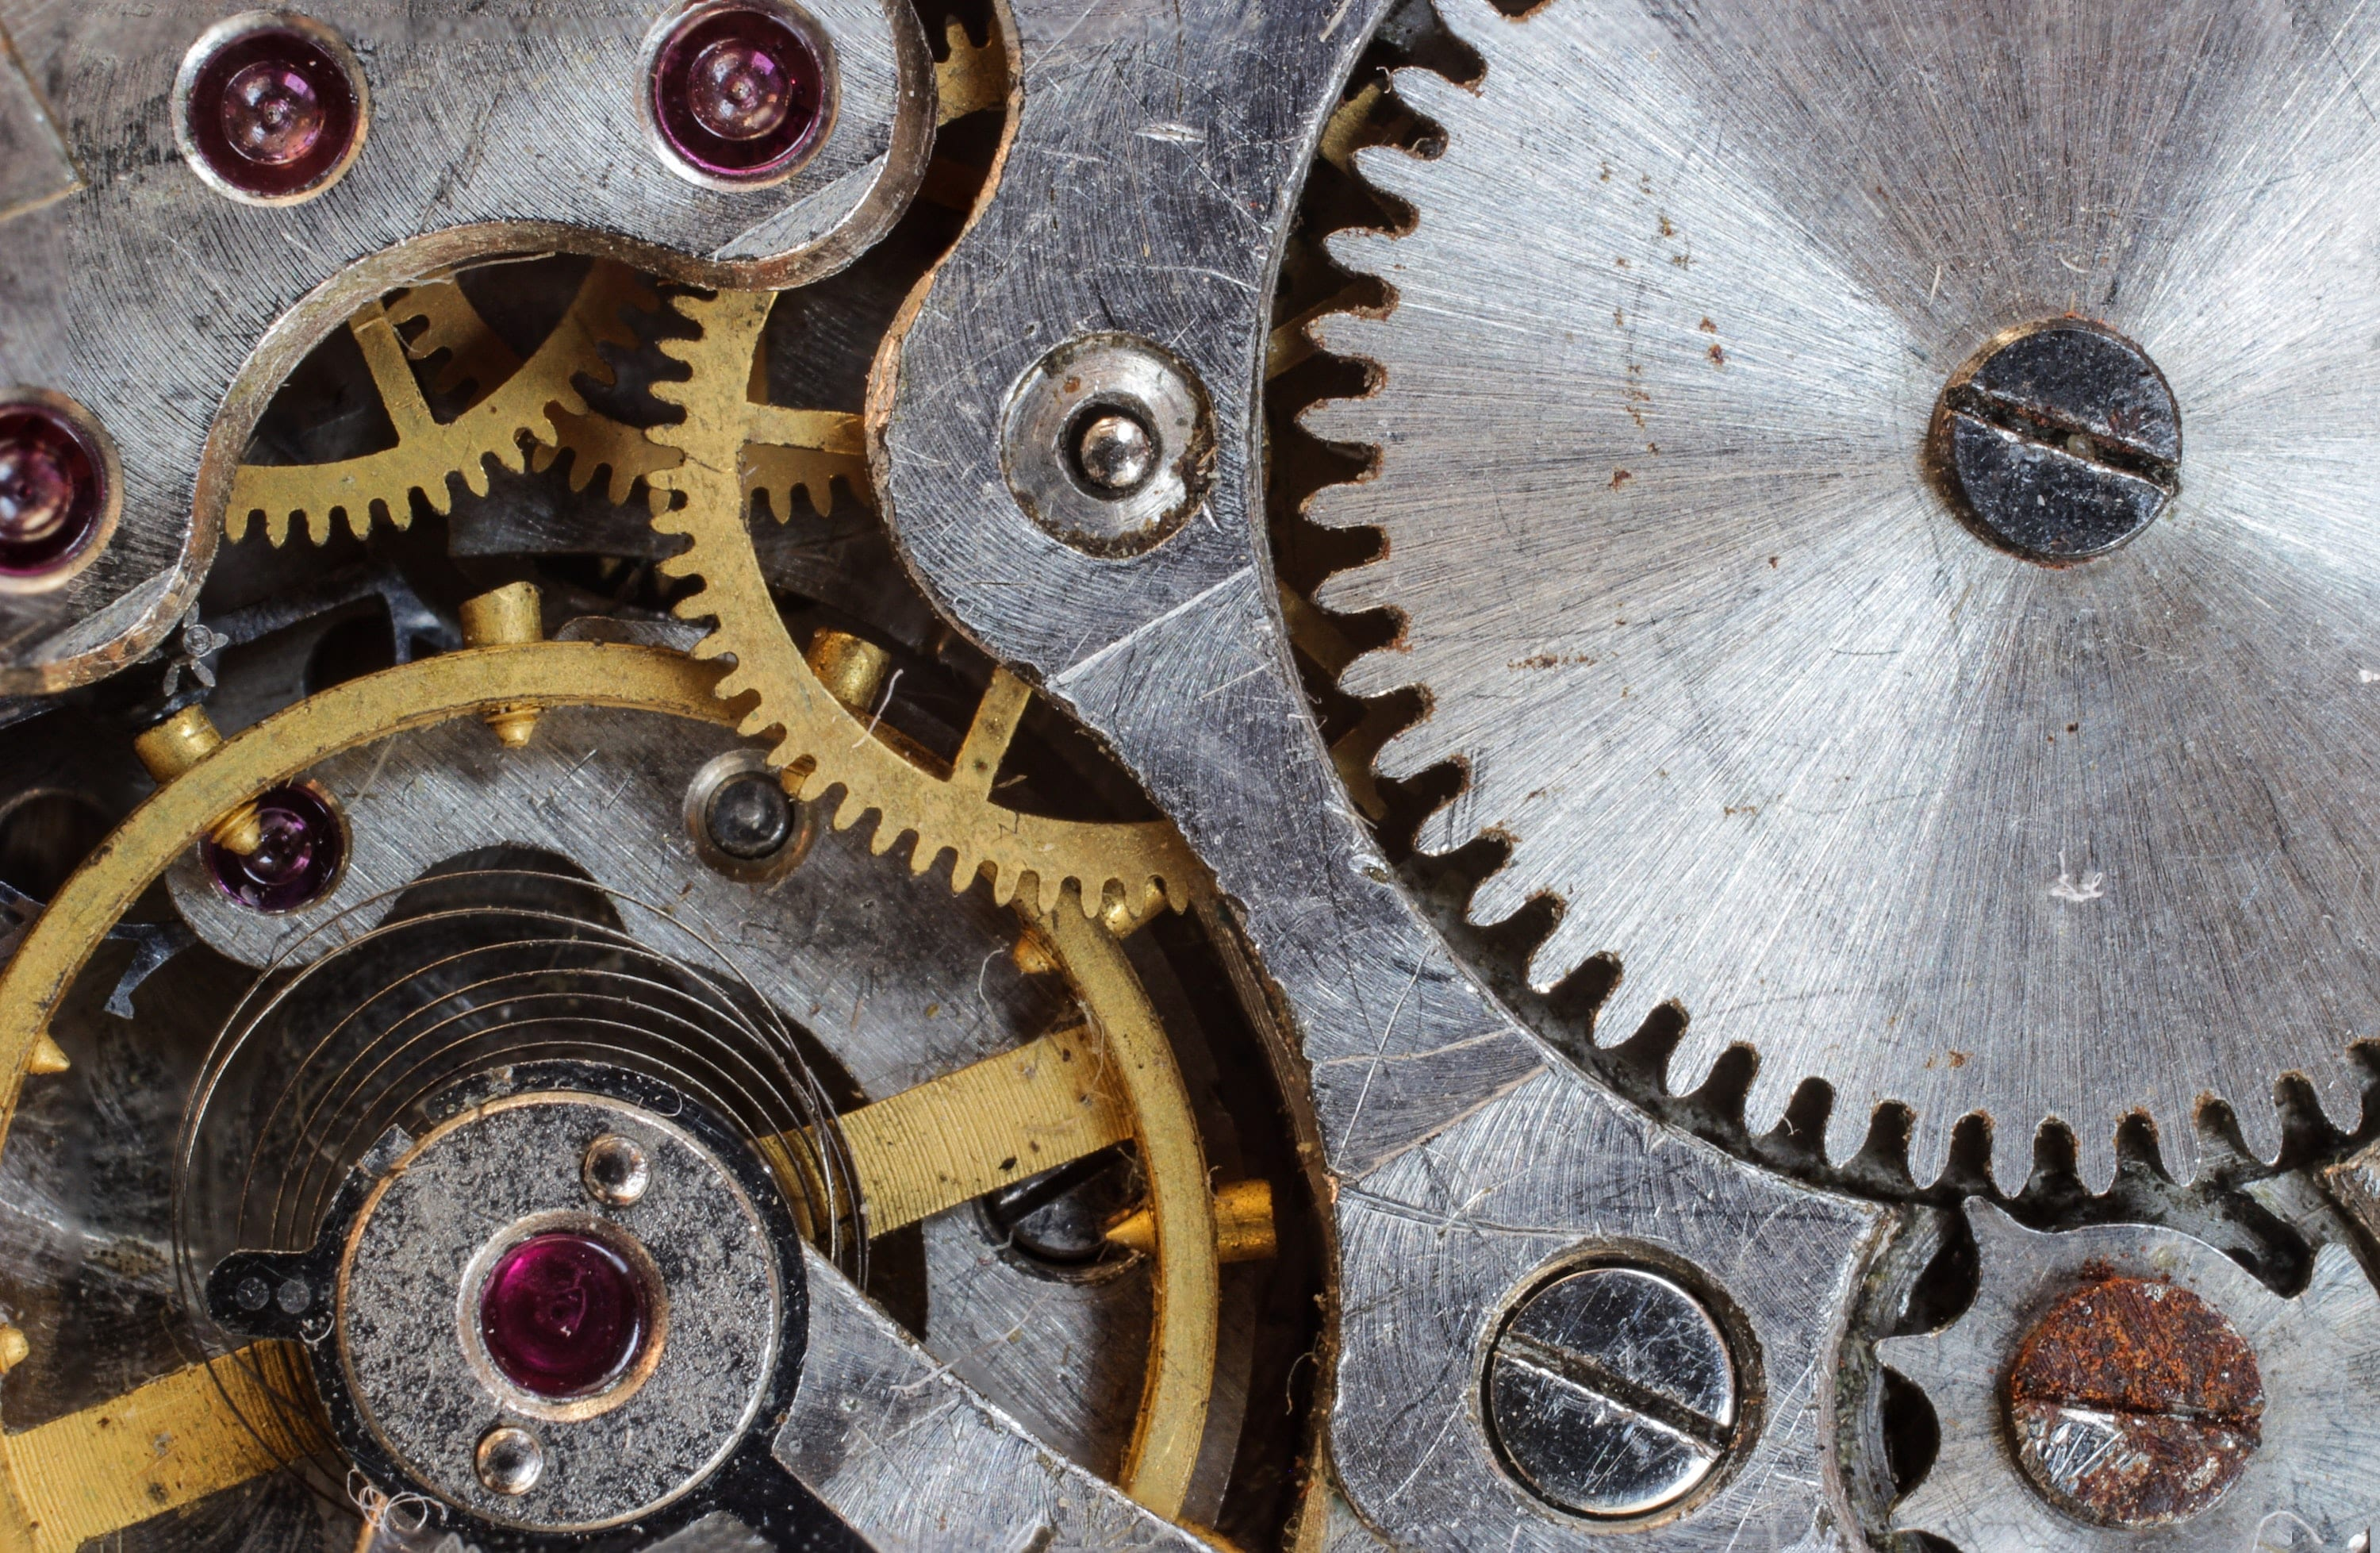 Technicians Are a Critical Link to all Areas of Your Business